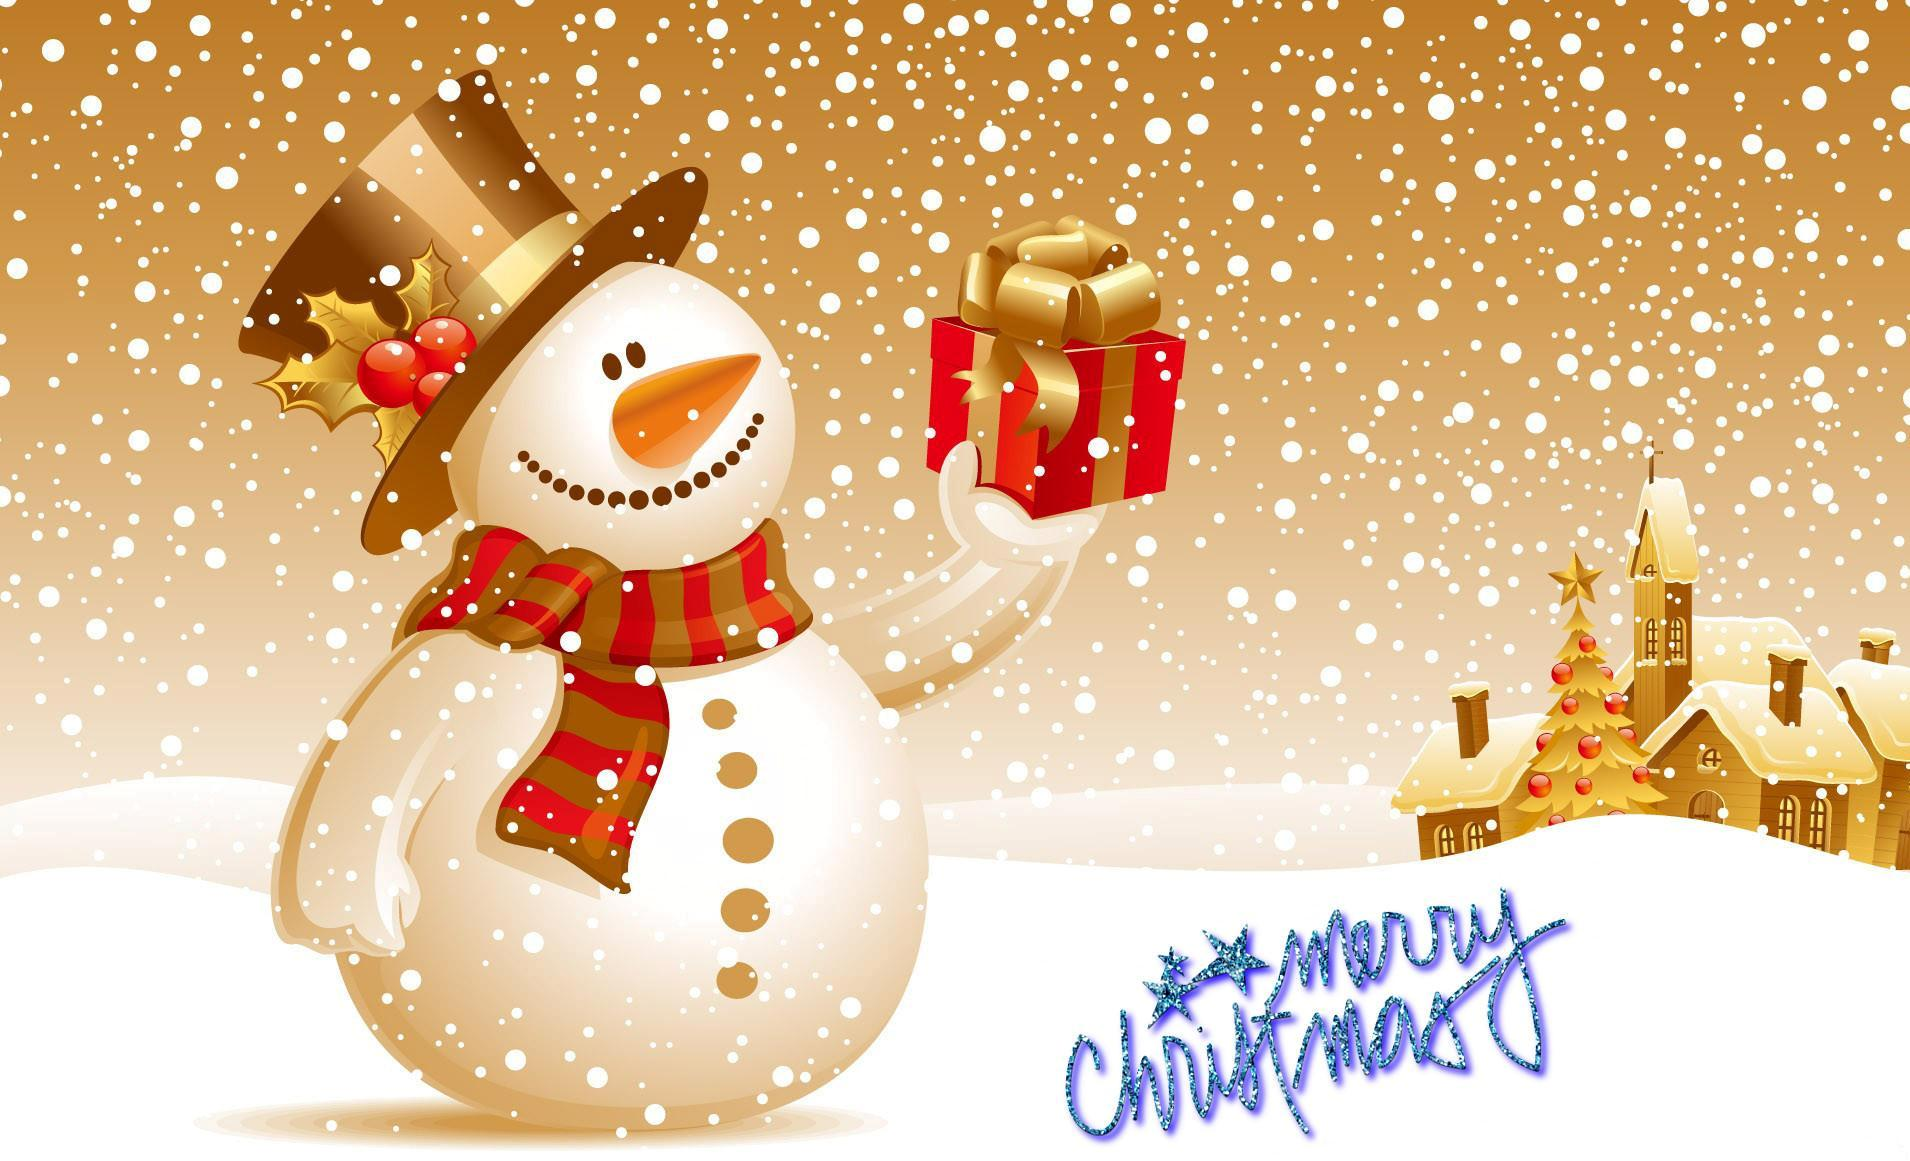 Merry Christmas tree Wallpapers Postcards Greetings Images